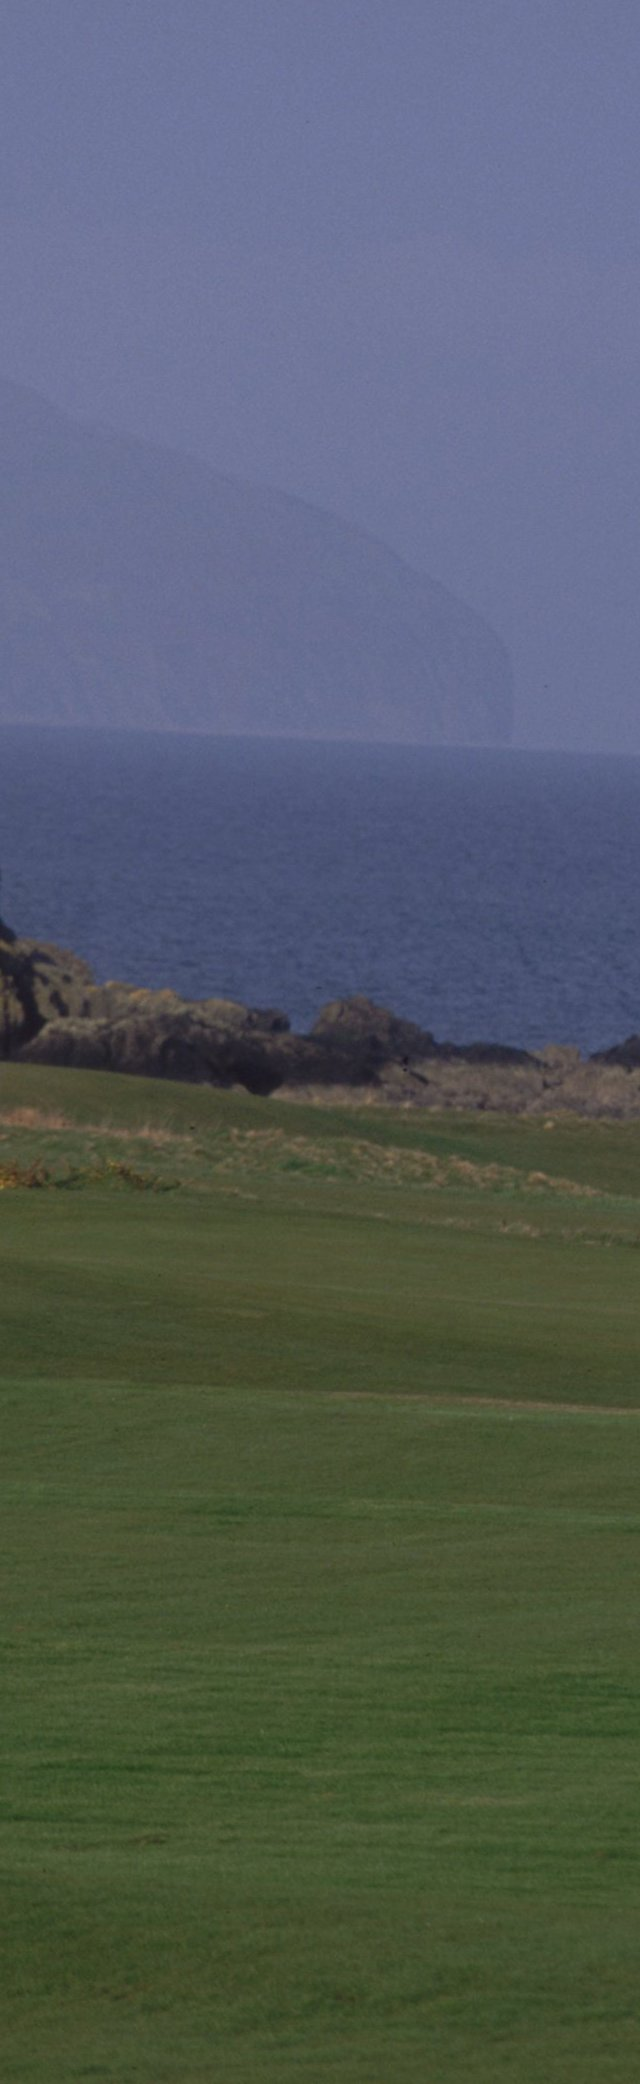 General view of the Par 4, 11th Hole on the Kintyre Course at Turnberry Hotel in Ayrshire, Scotland. Hole No. 10 would be even better if they would move the green way left to the site of the 11th tee along the shore, which would make for an even more dramatic par 4.